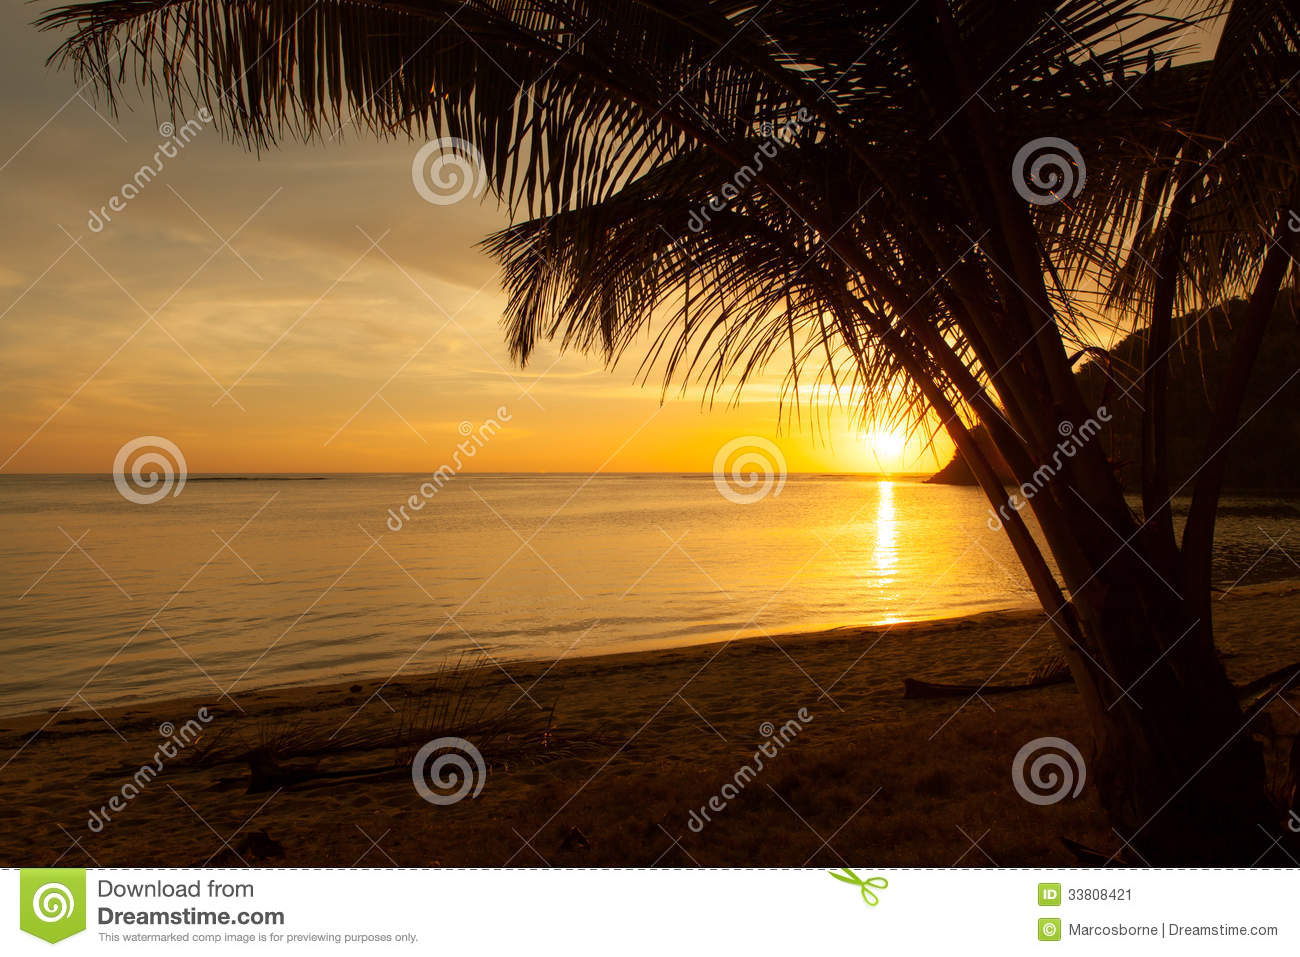 Romantic Pictures Of Tropical Beaches: Romantic Beach By Sundown Stock Image